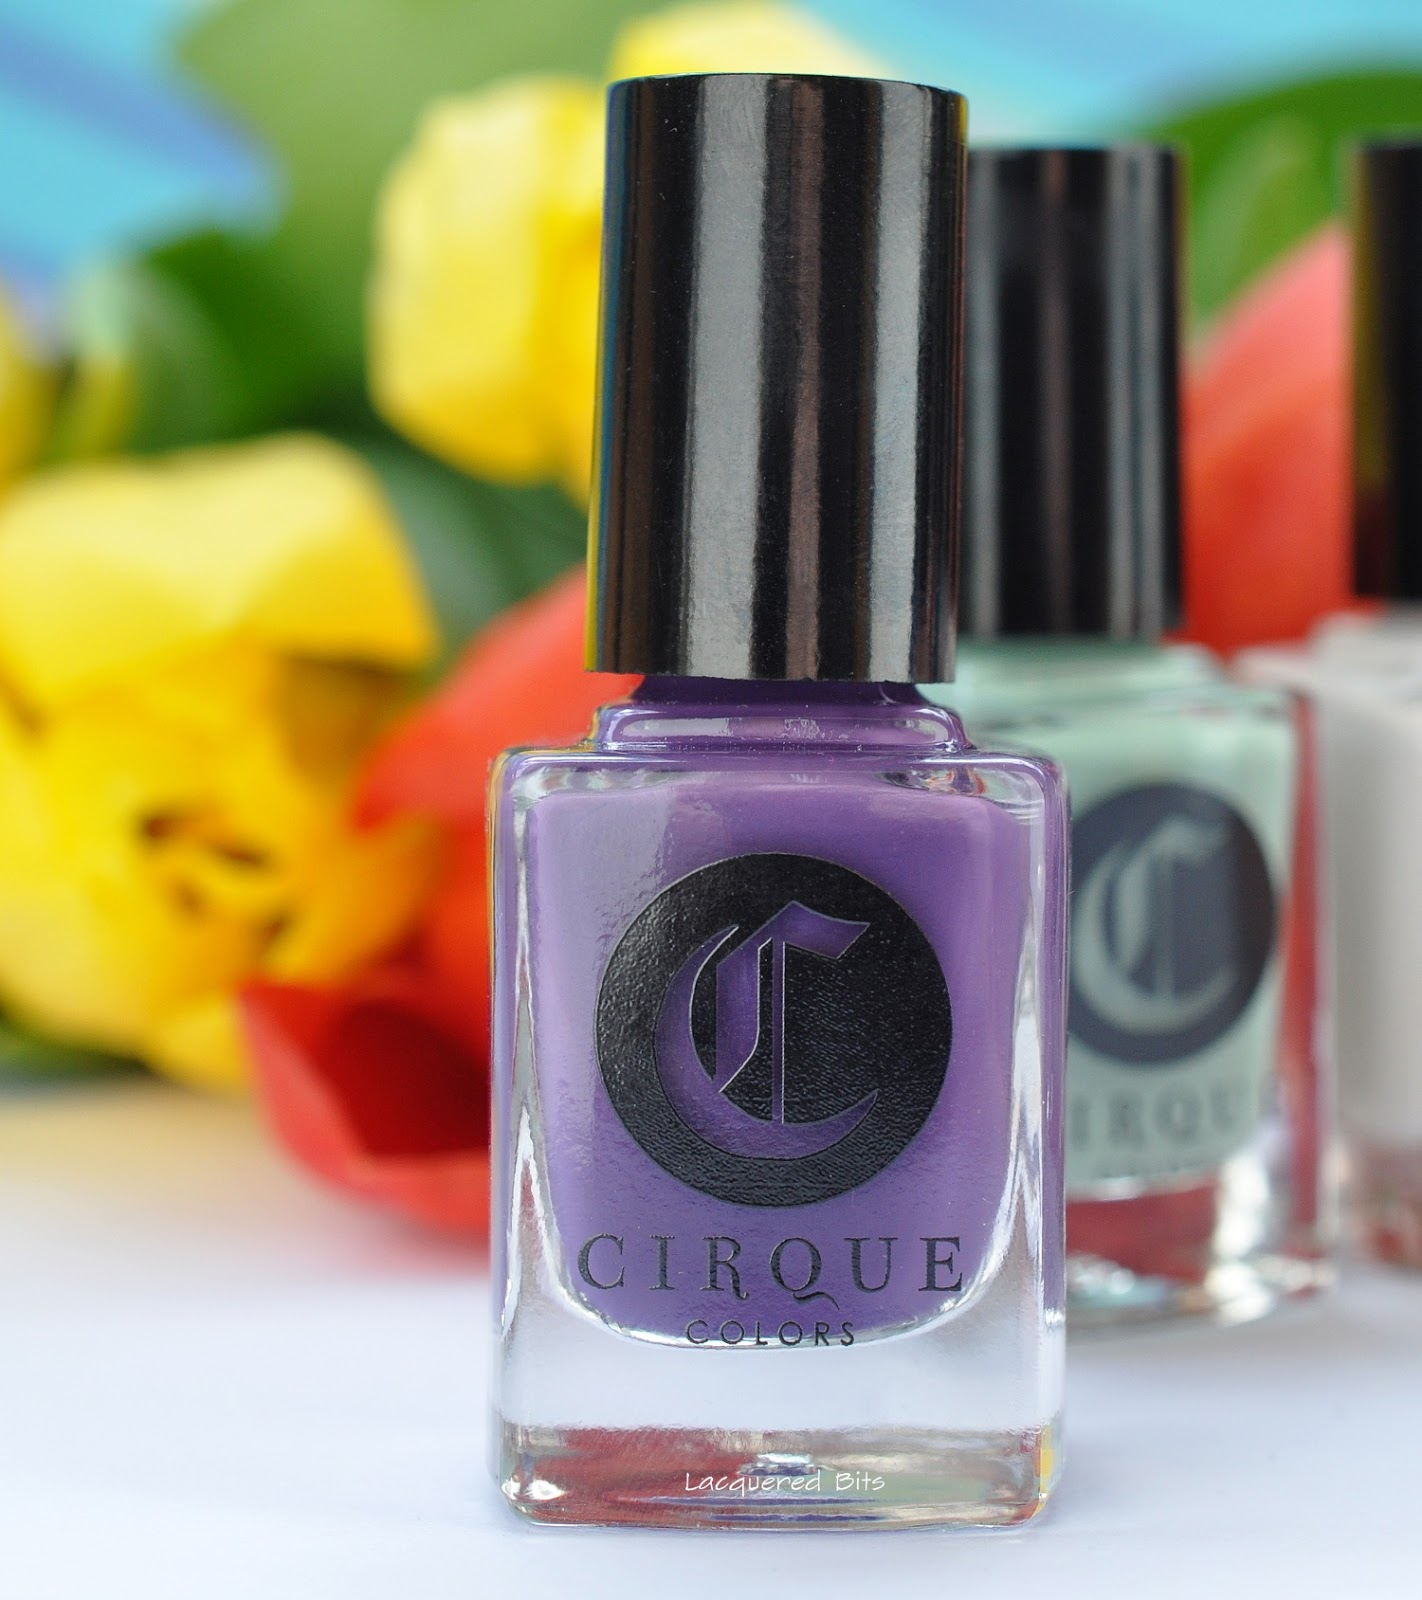 Chelsea Girl - Cirque Colors Spring/Summer 2016